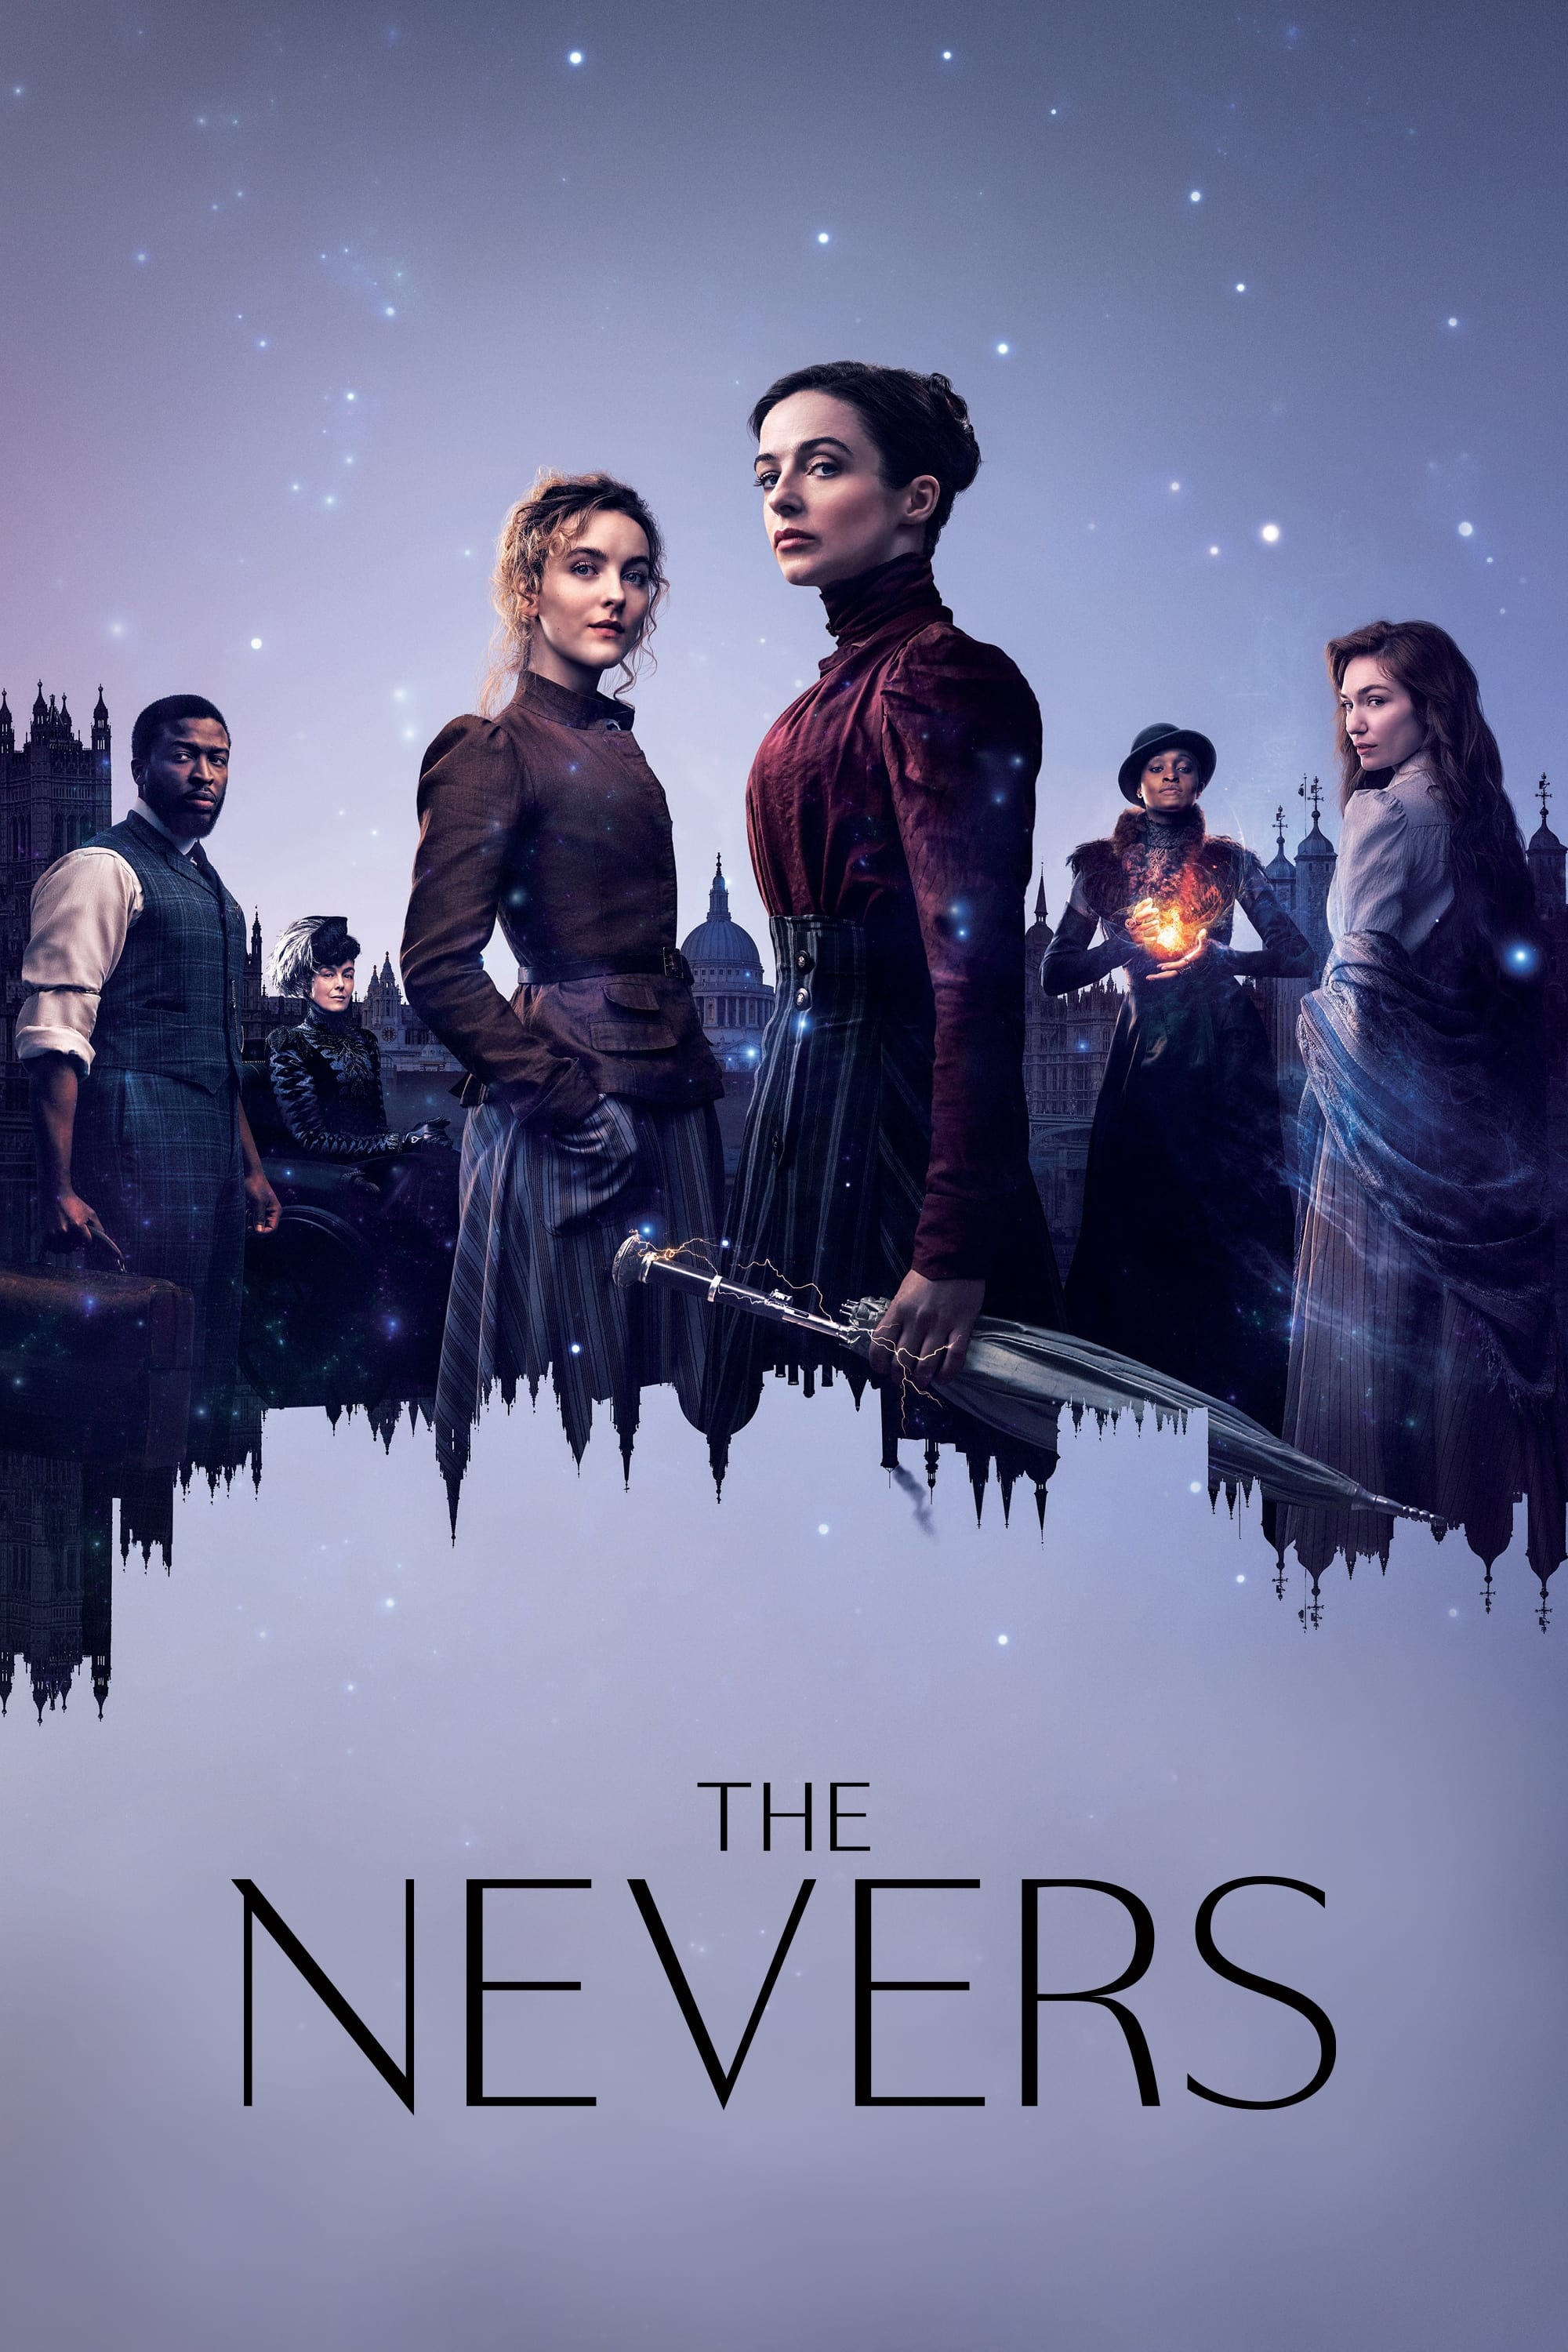 The Nevers poster